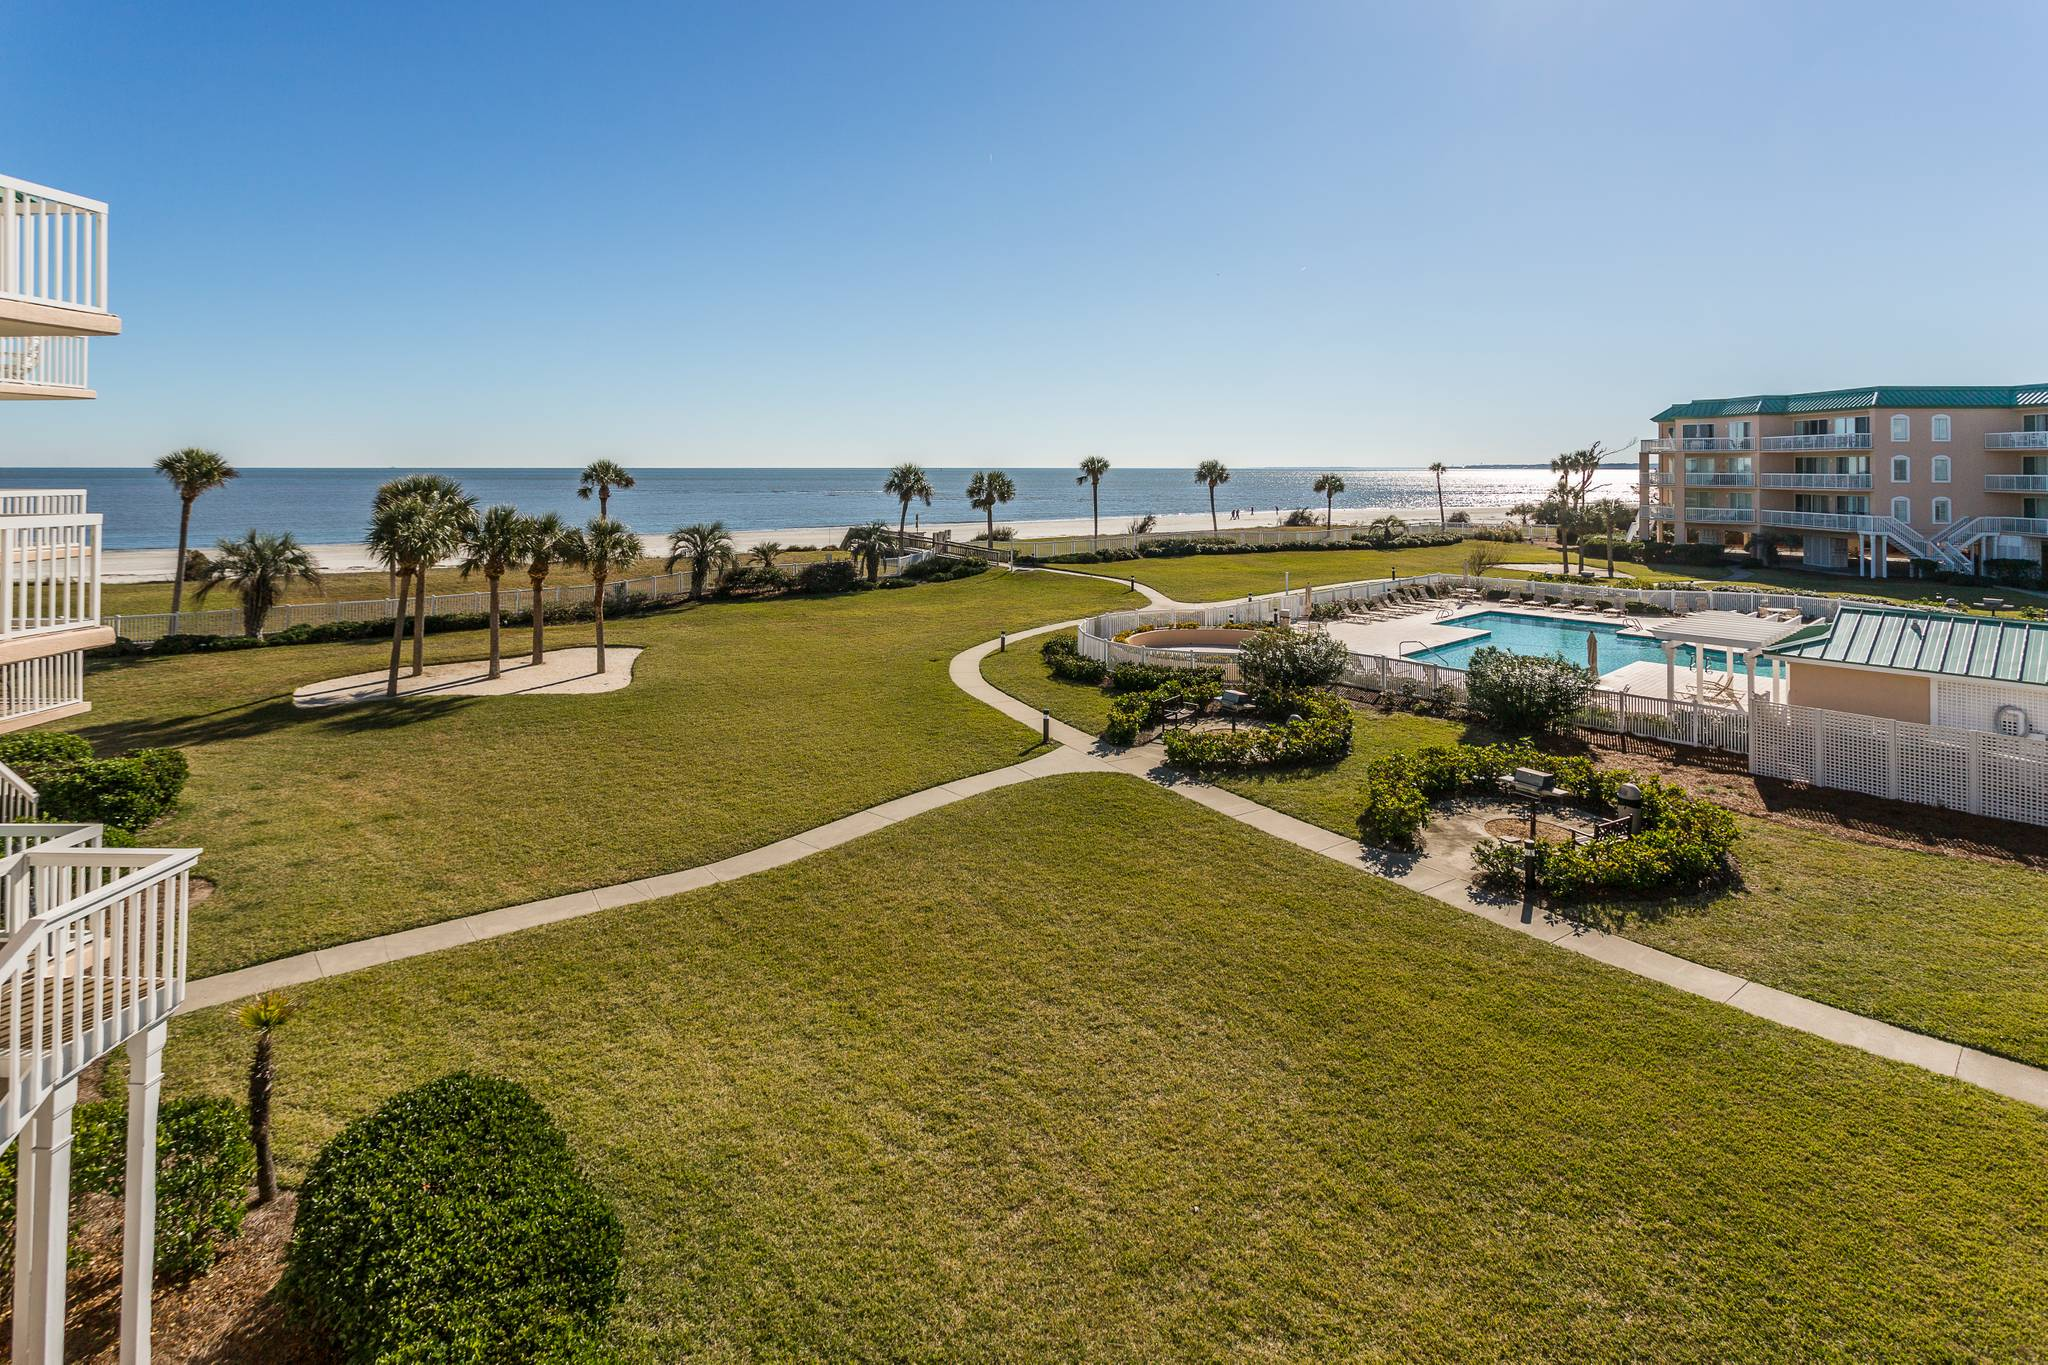 Real Escape Properties St Simons Island Georgia Vacation Rental Management Company